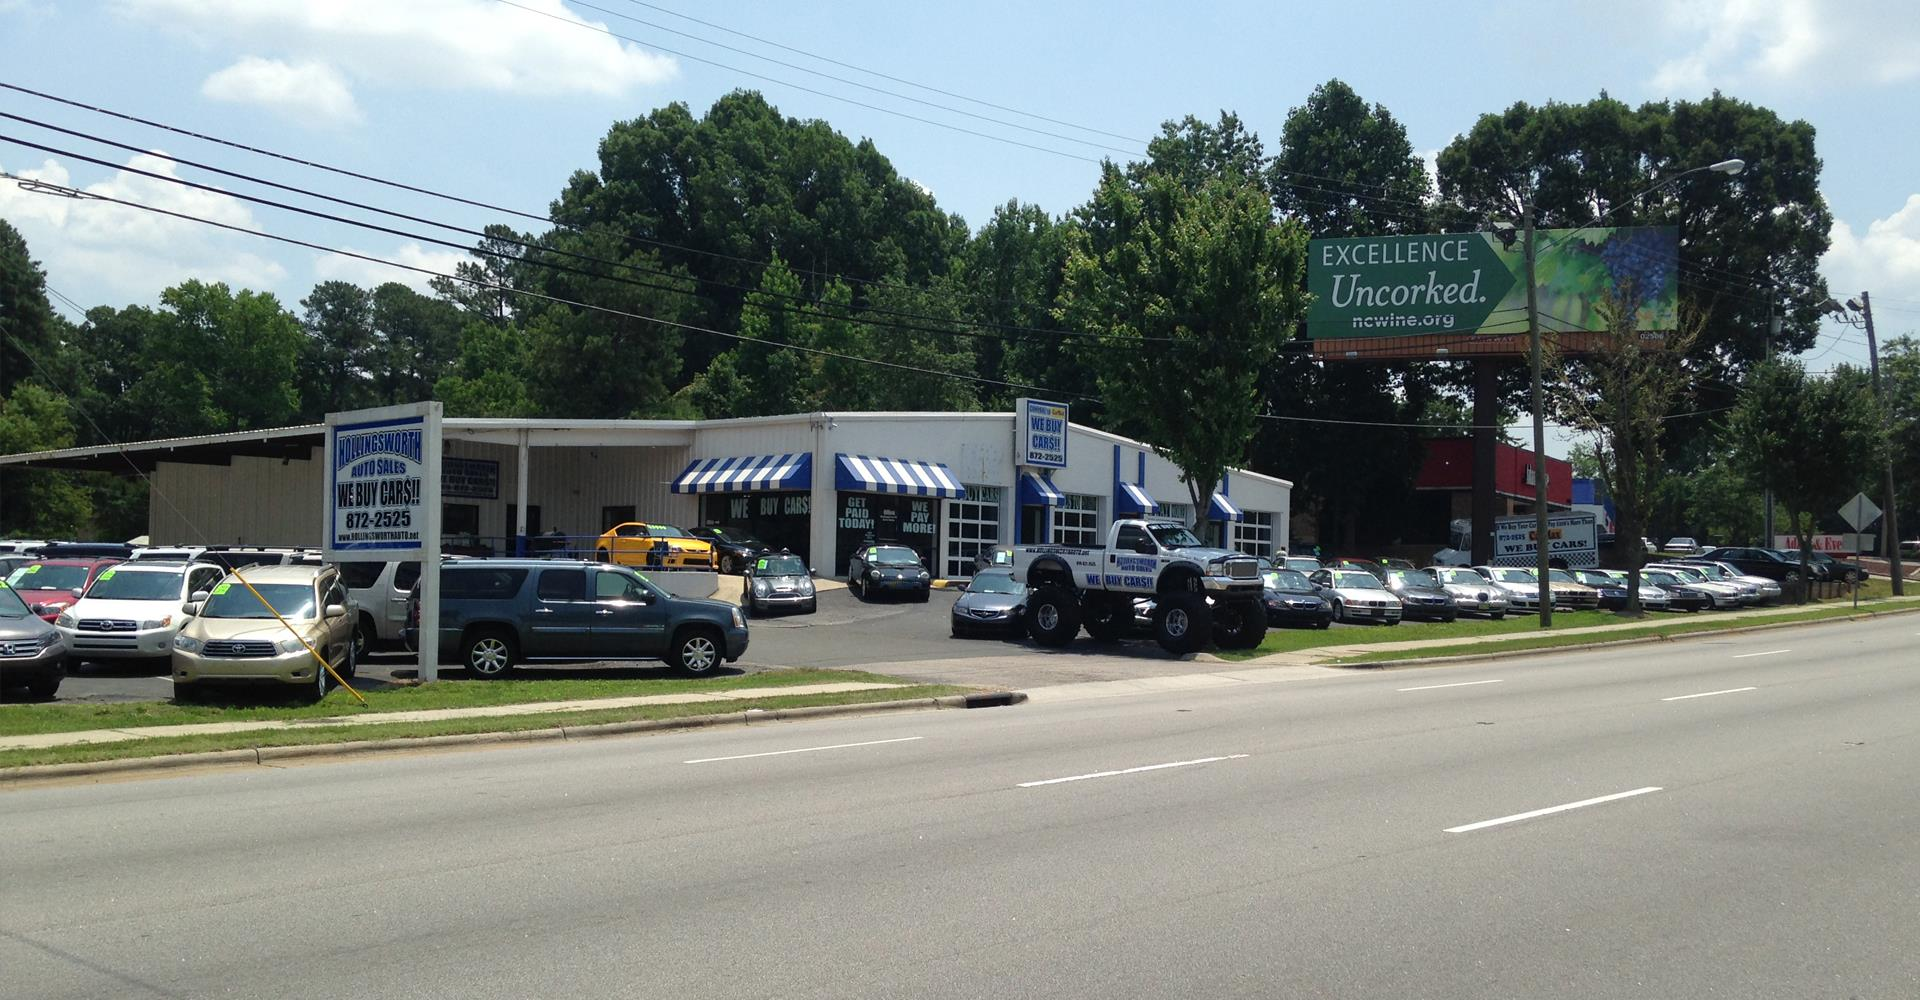 Used Car Dealer Near Me New Hollingsworth Auto Sales Of Raleigh Raleigh Nc